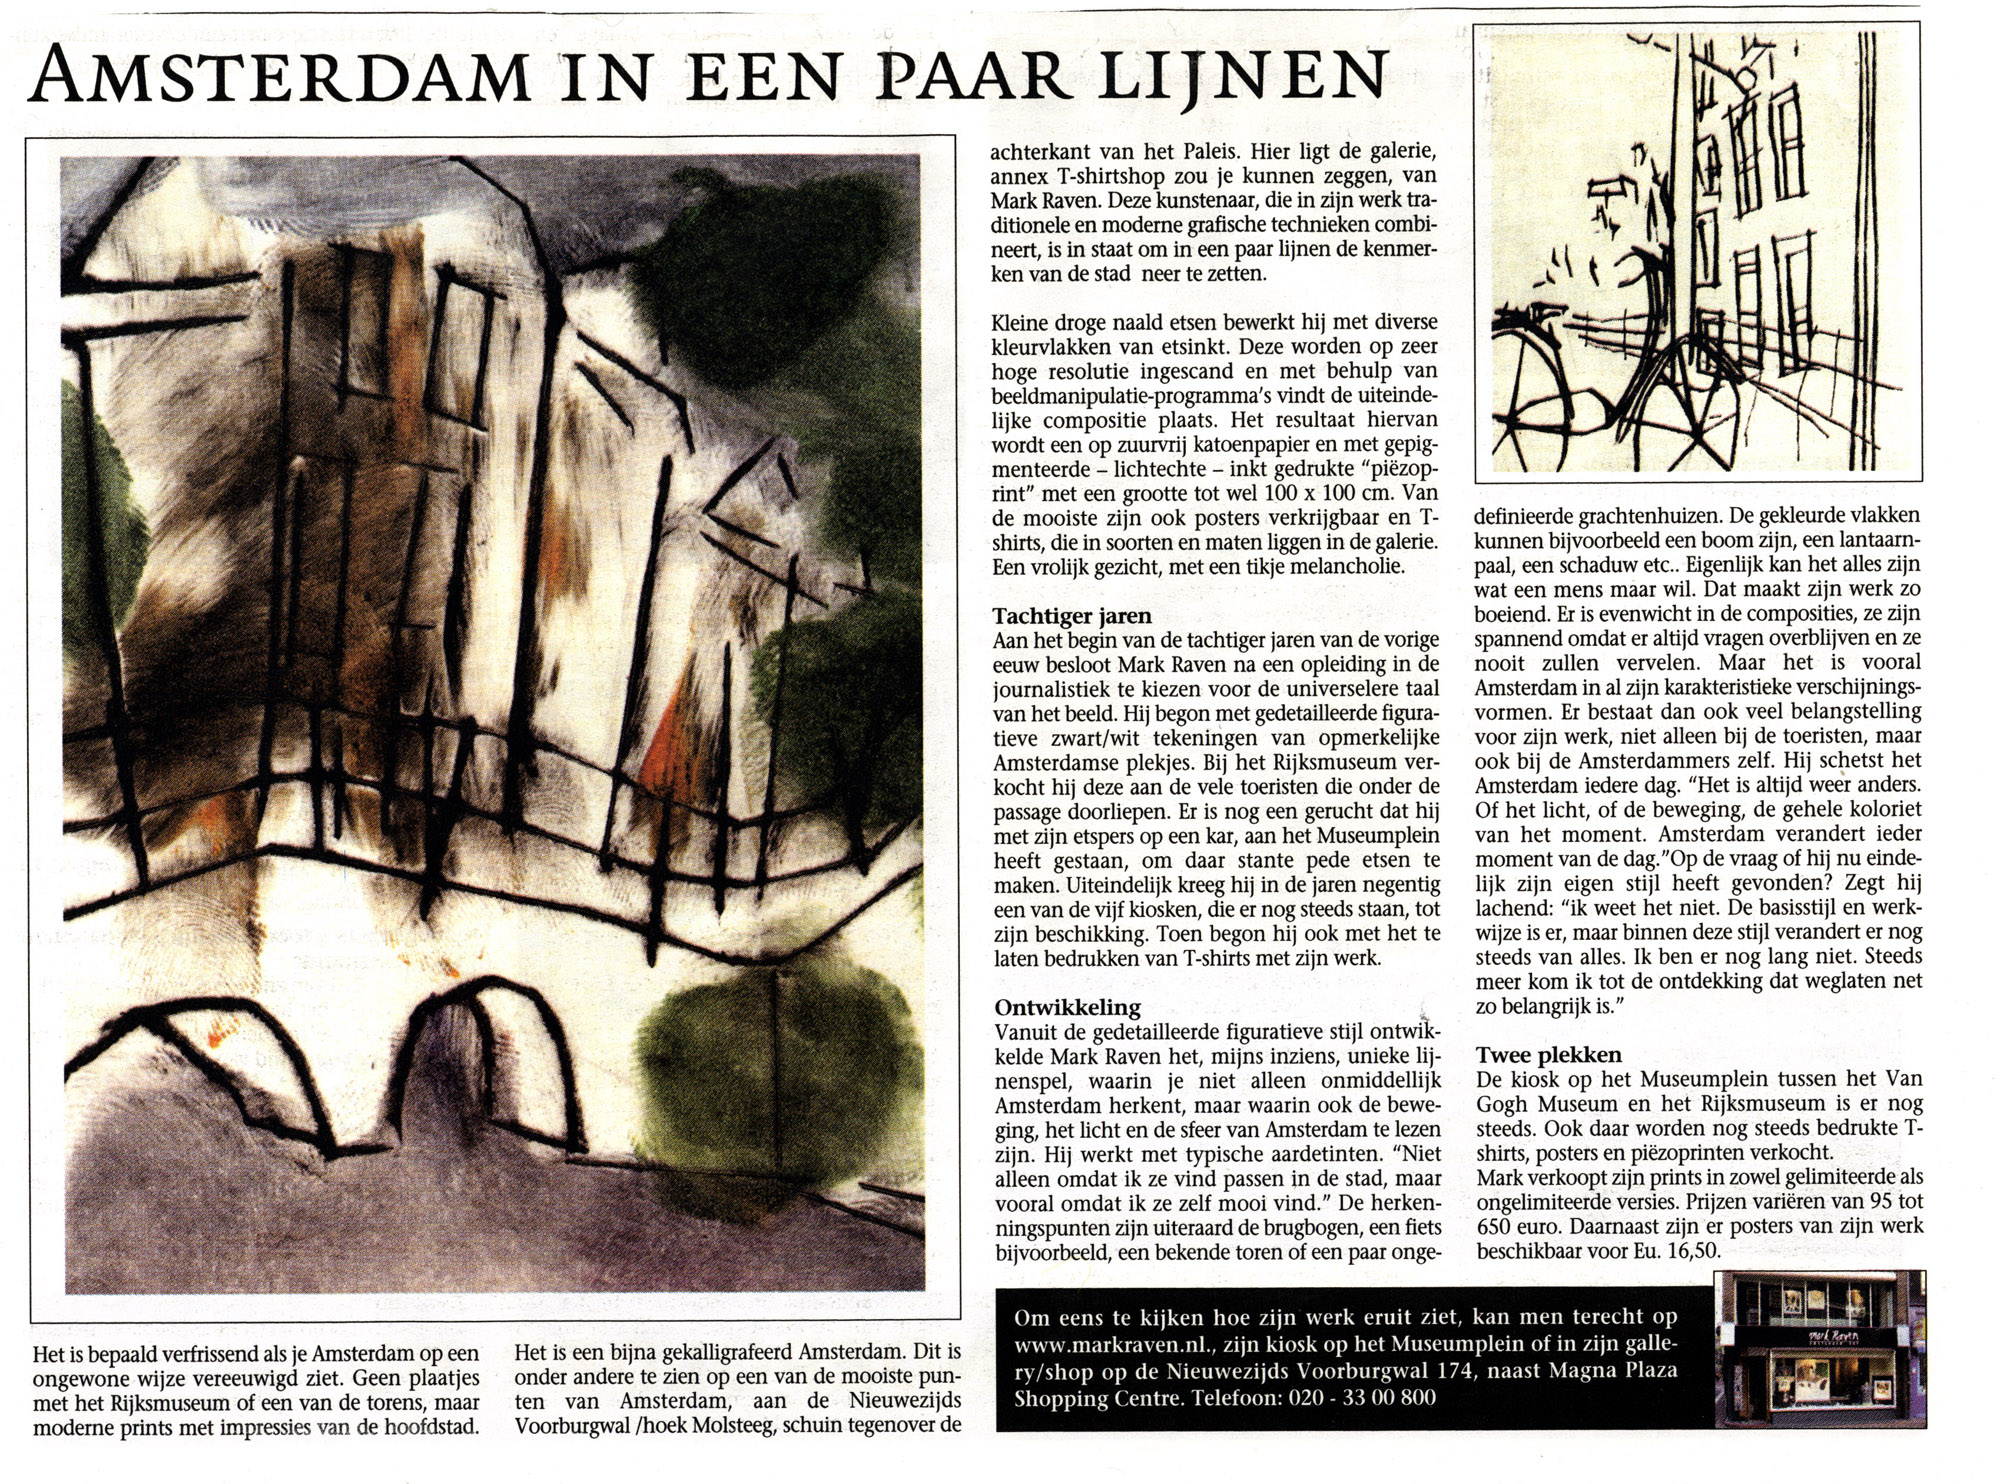 Article in Museum Krant of Amsterdam Artist Mark Raven